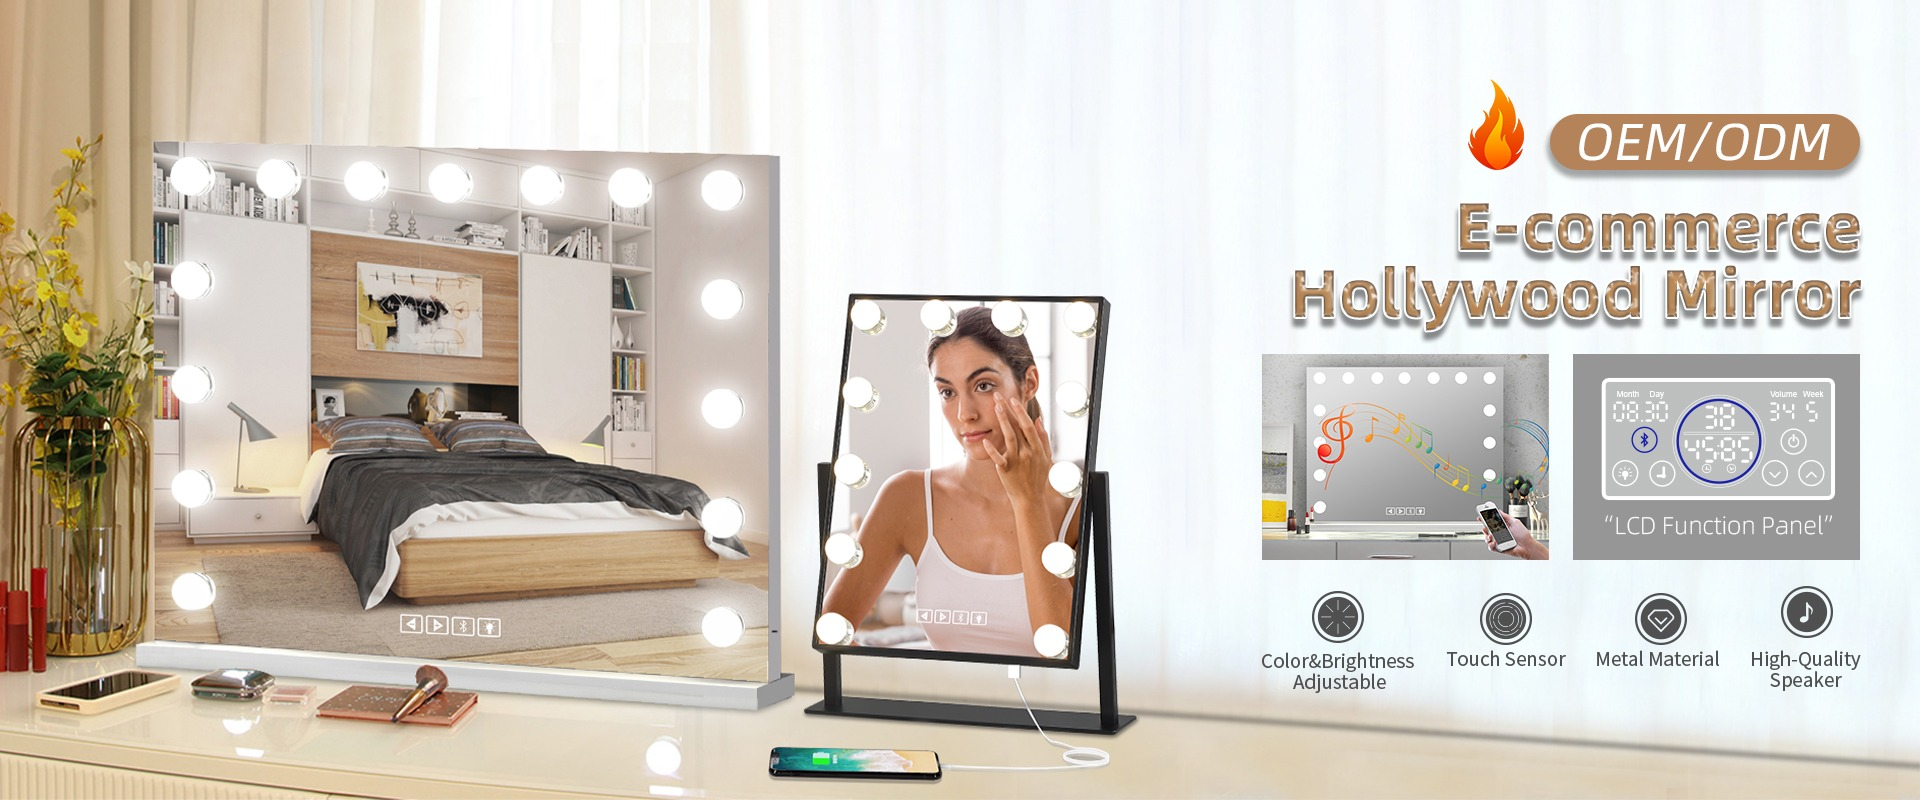 tabletop makeup lighted mirror